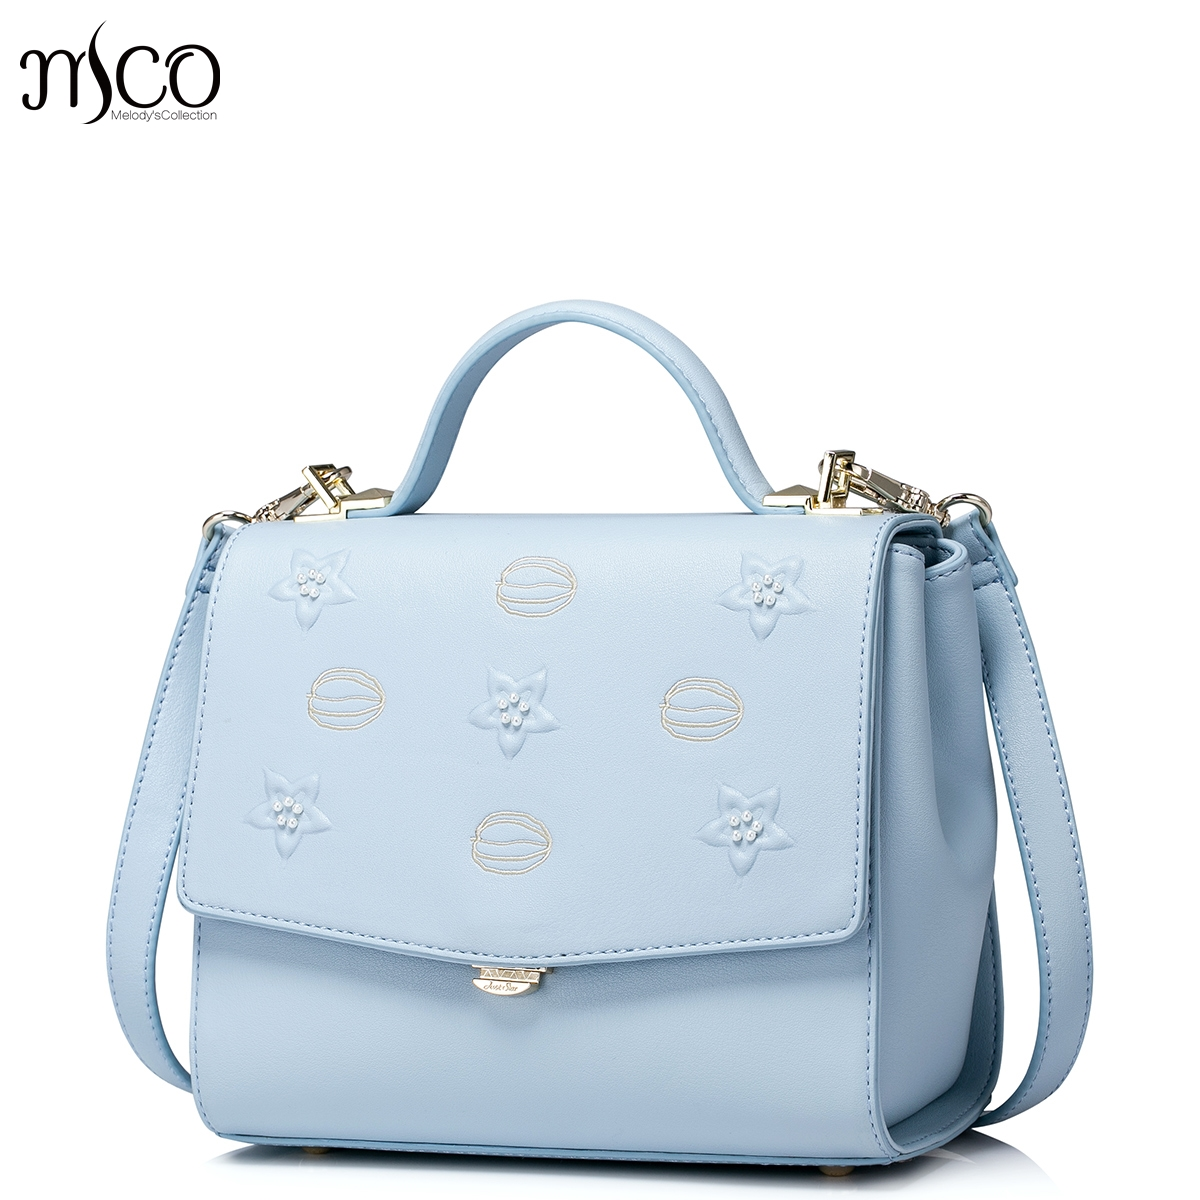 2017 New Fashion Stars Printing Fresh Blue Flap Handbag For OL Ladies Luxury Embroidery Women Shoulder Bag Small Messenger Bags anteater куртка anteater m65 black s